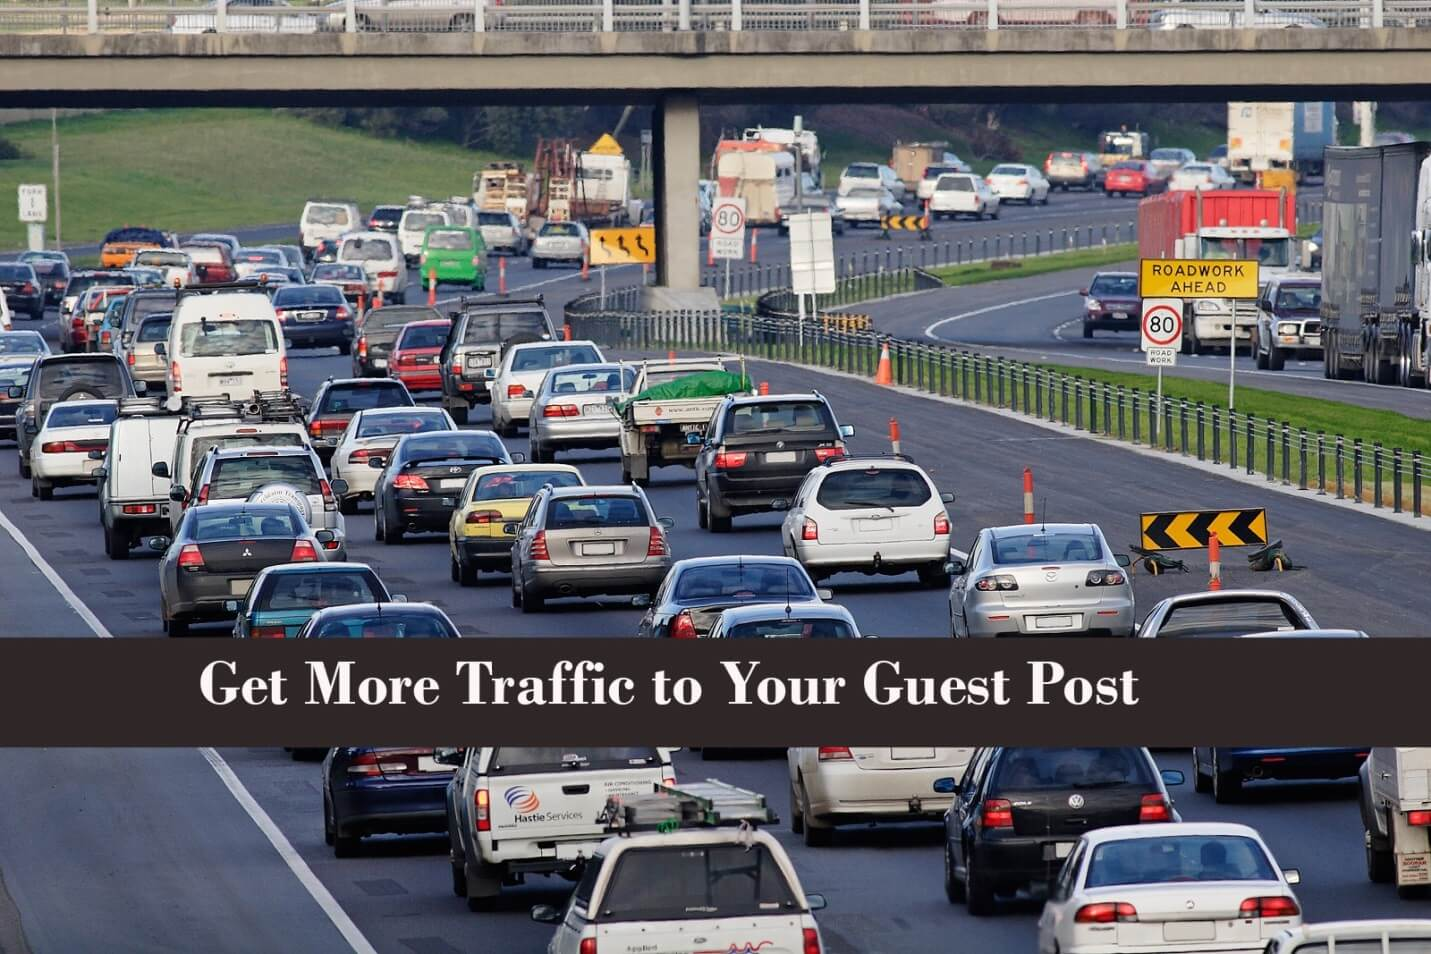 Get More Traffic to Your Guest Post